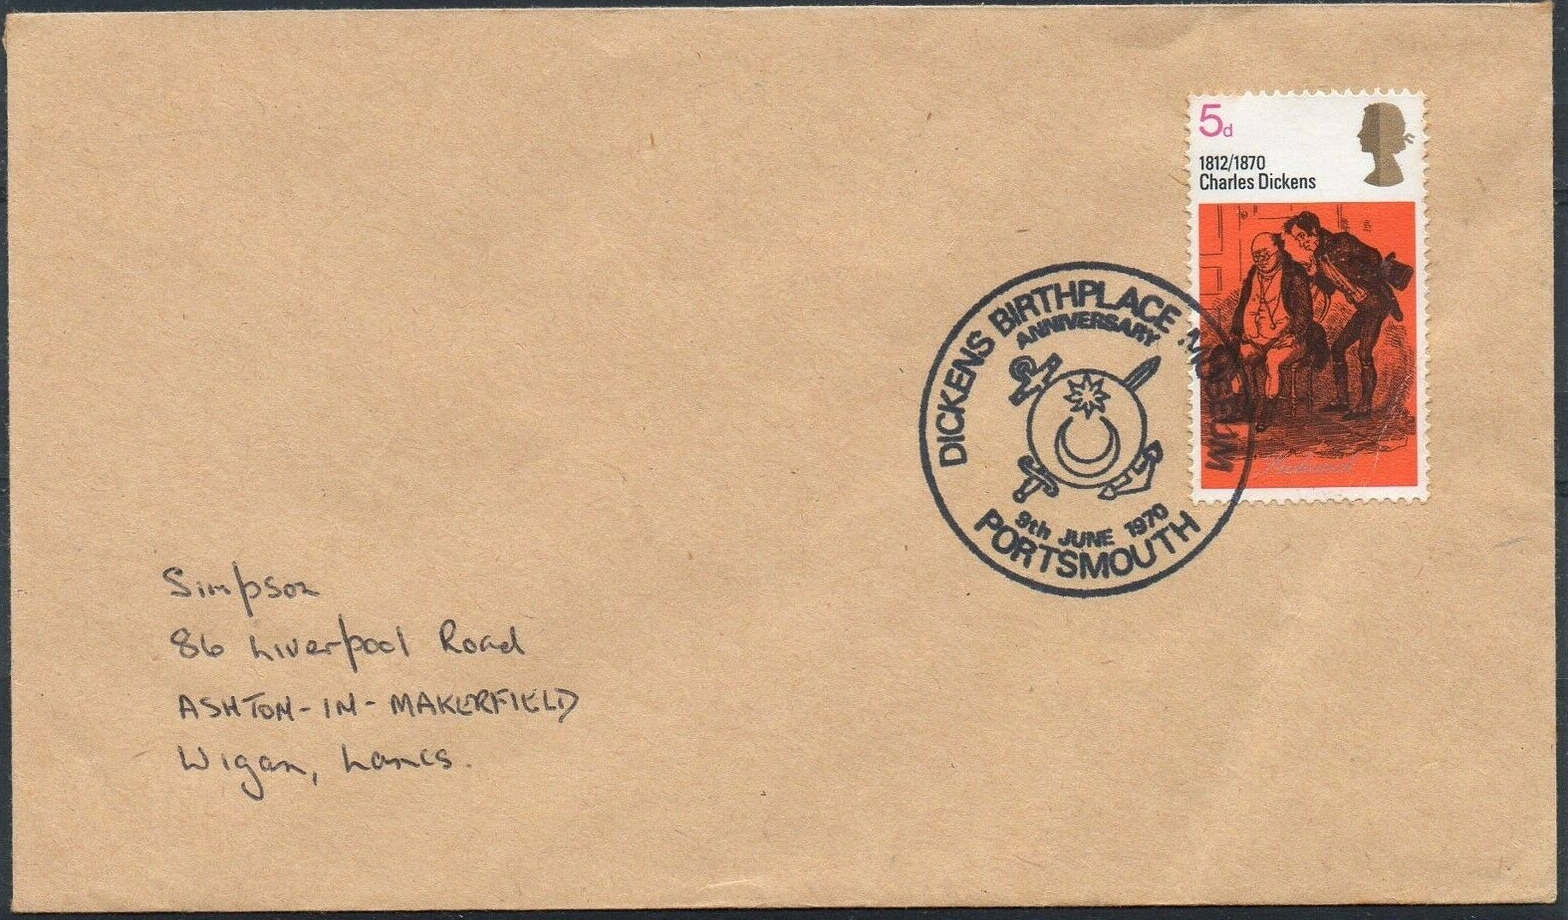 Great Britain - Scott #617 (1970) on cover with special postmark from Charles Dickens's birthplace in Portsmouth, England, June 8, 1970